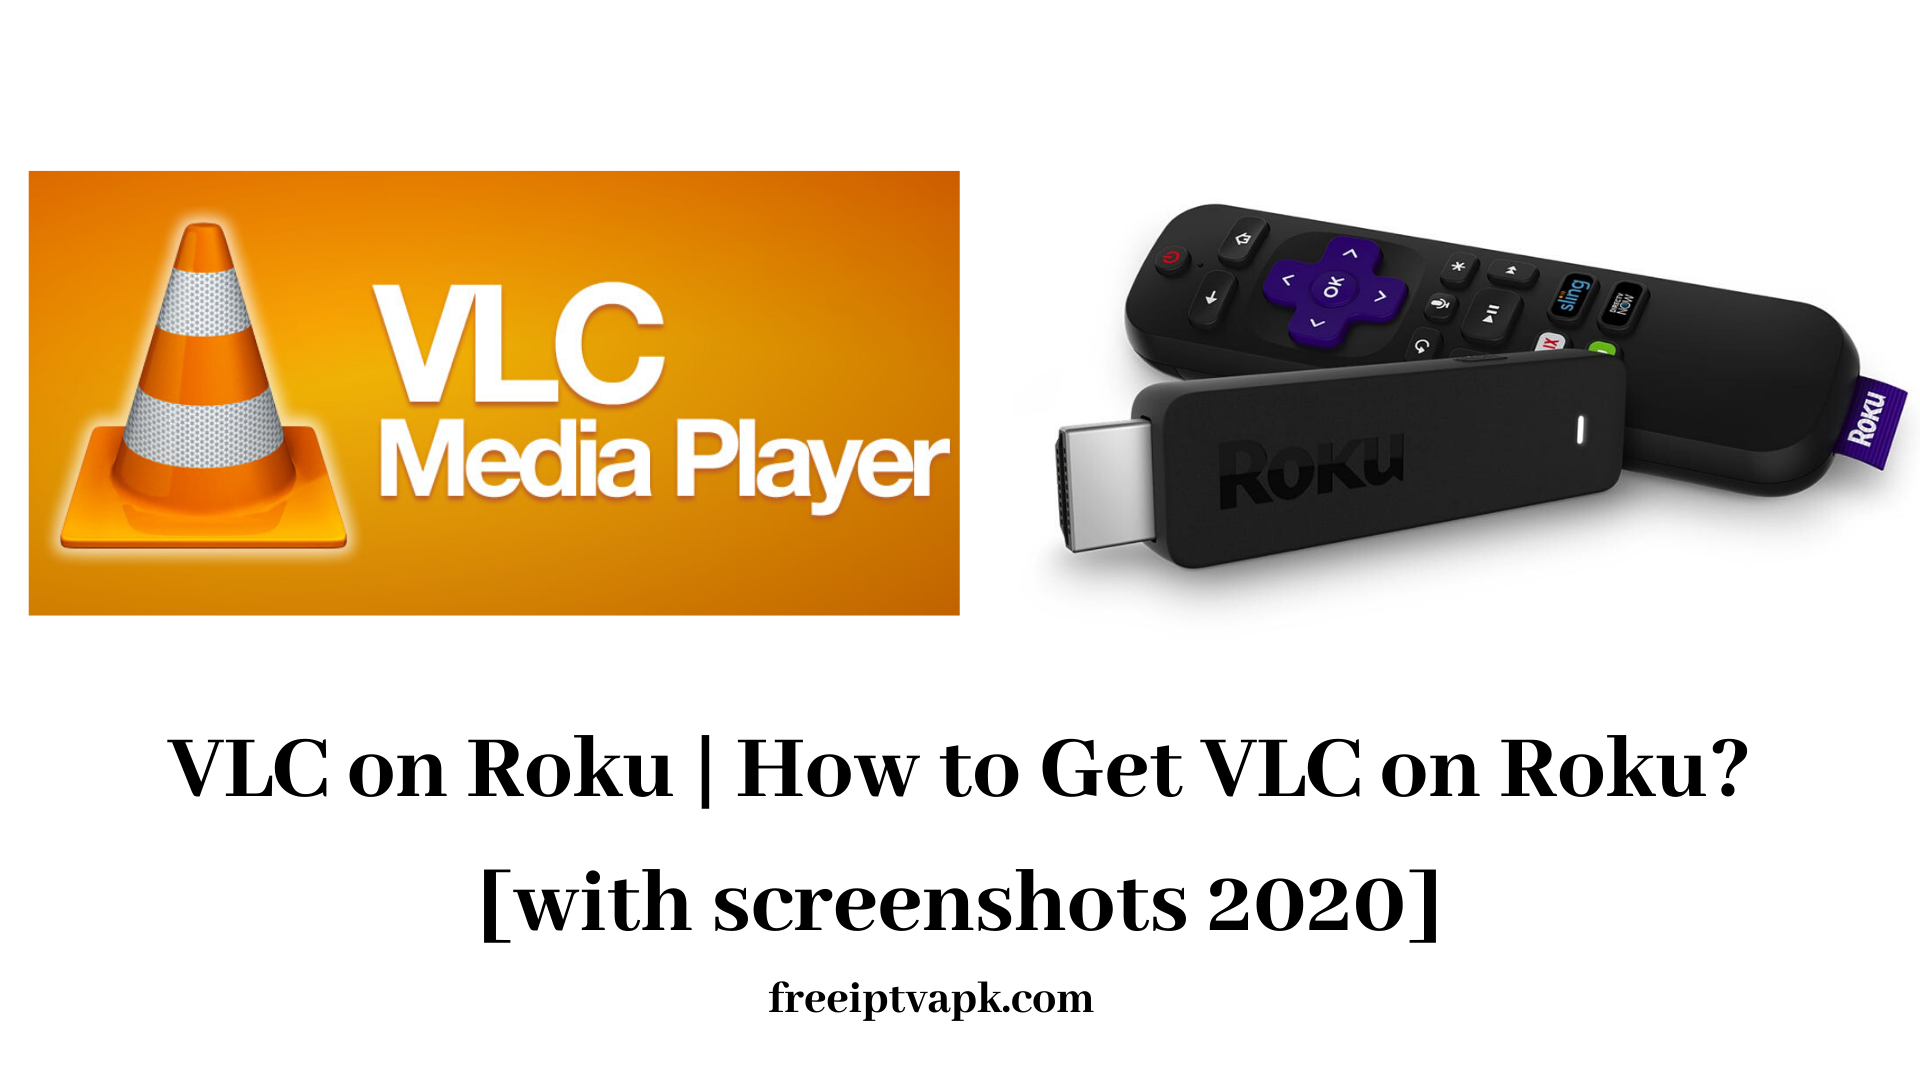 Vlc On Roku How To Get Vlc On Roku With Screenshots 2020